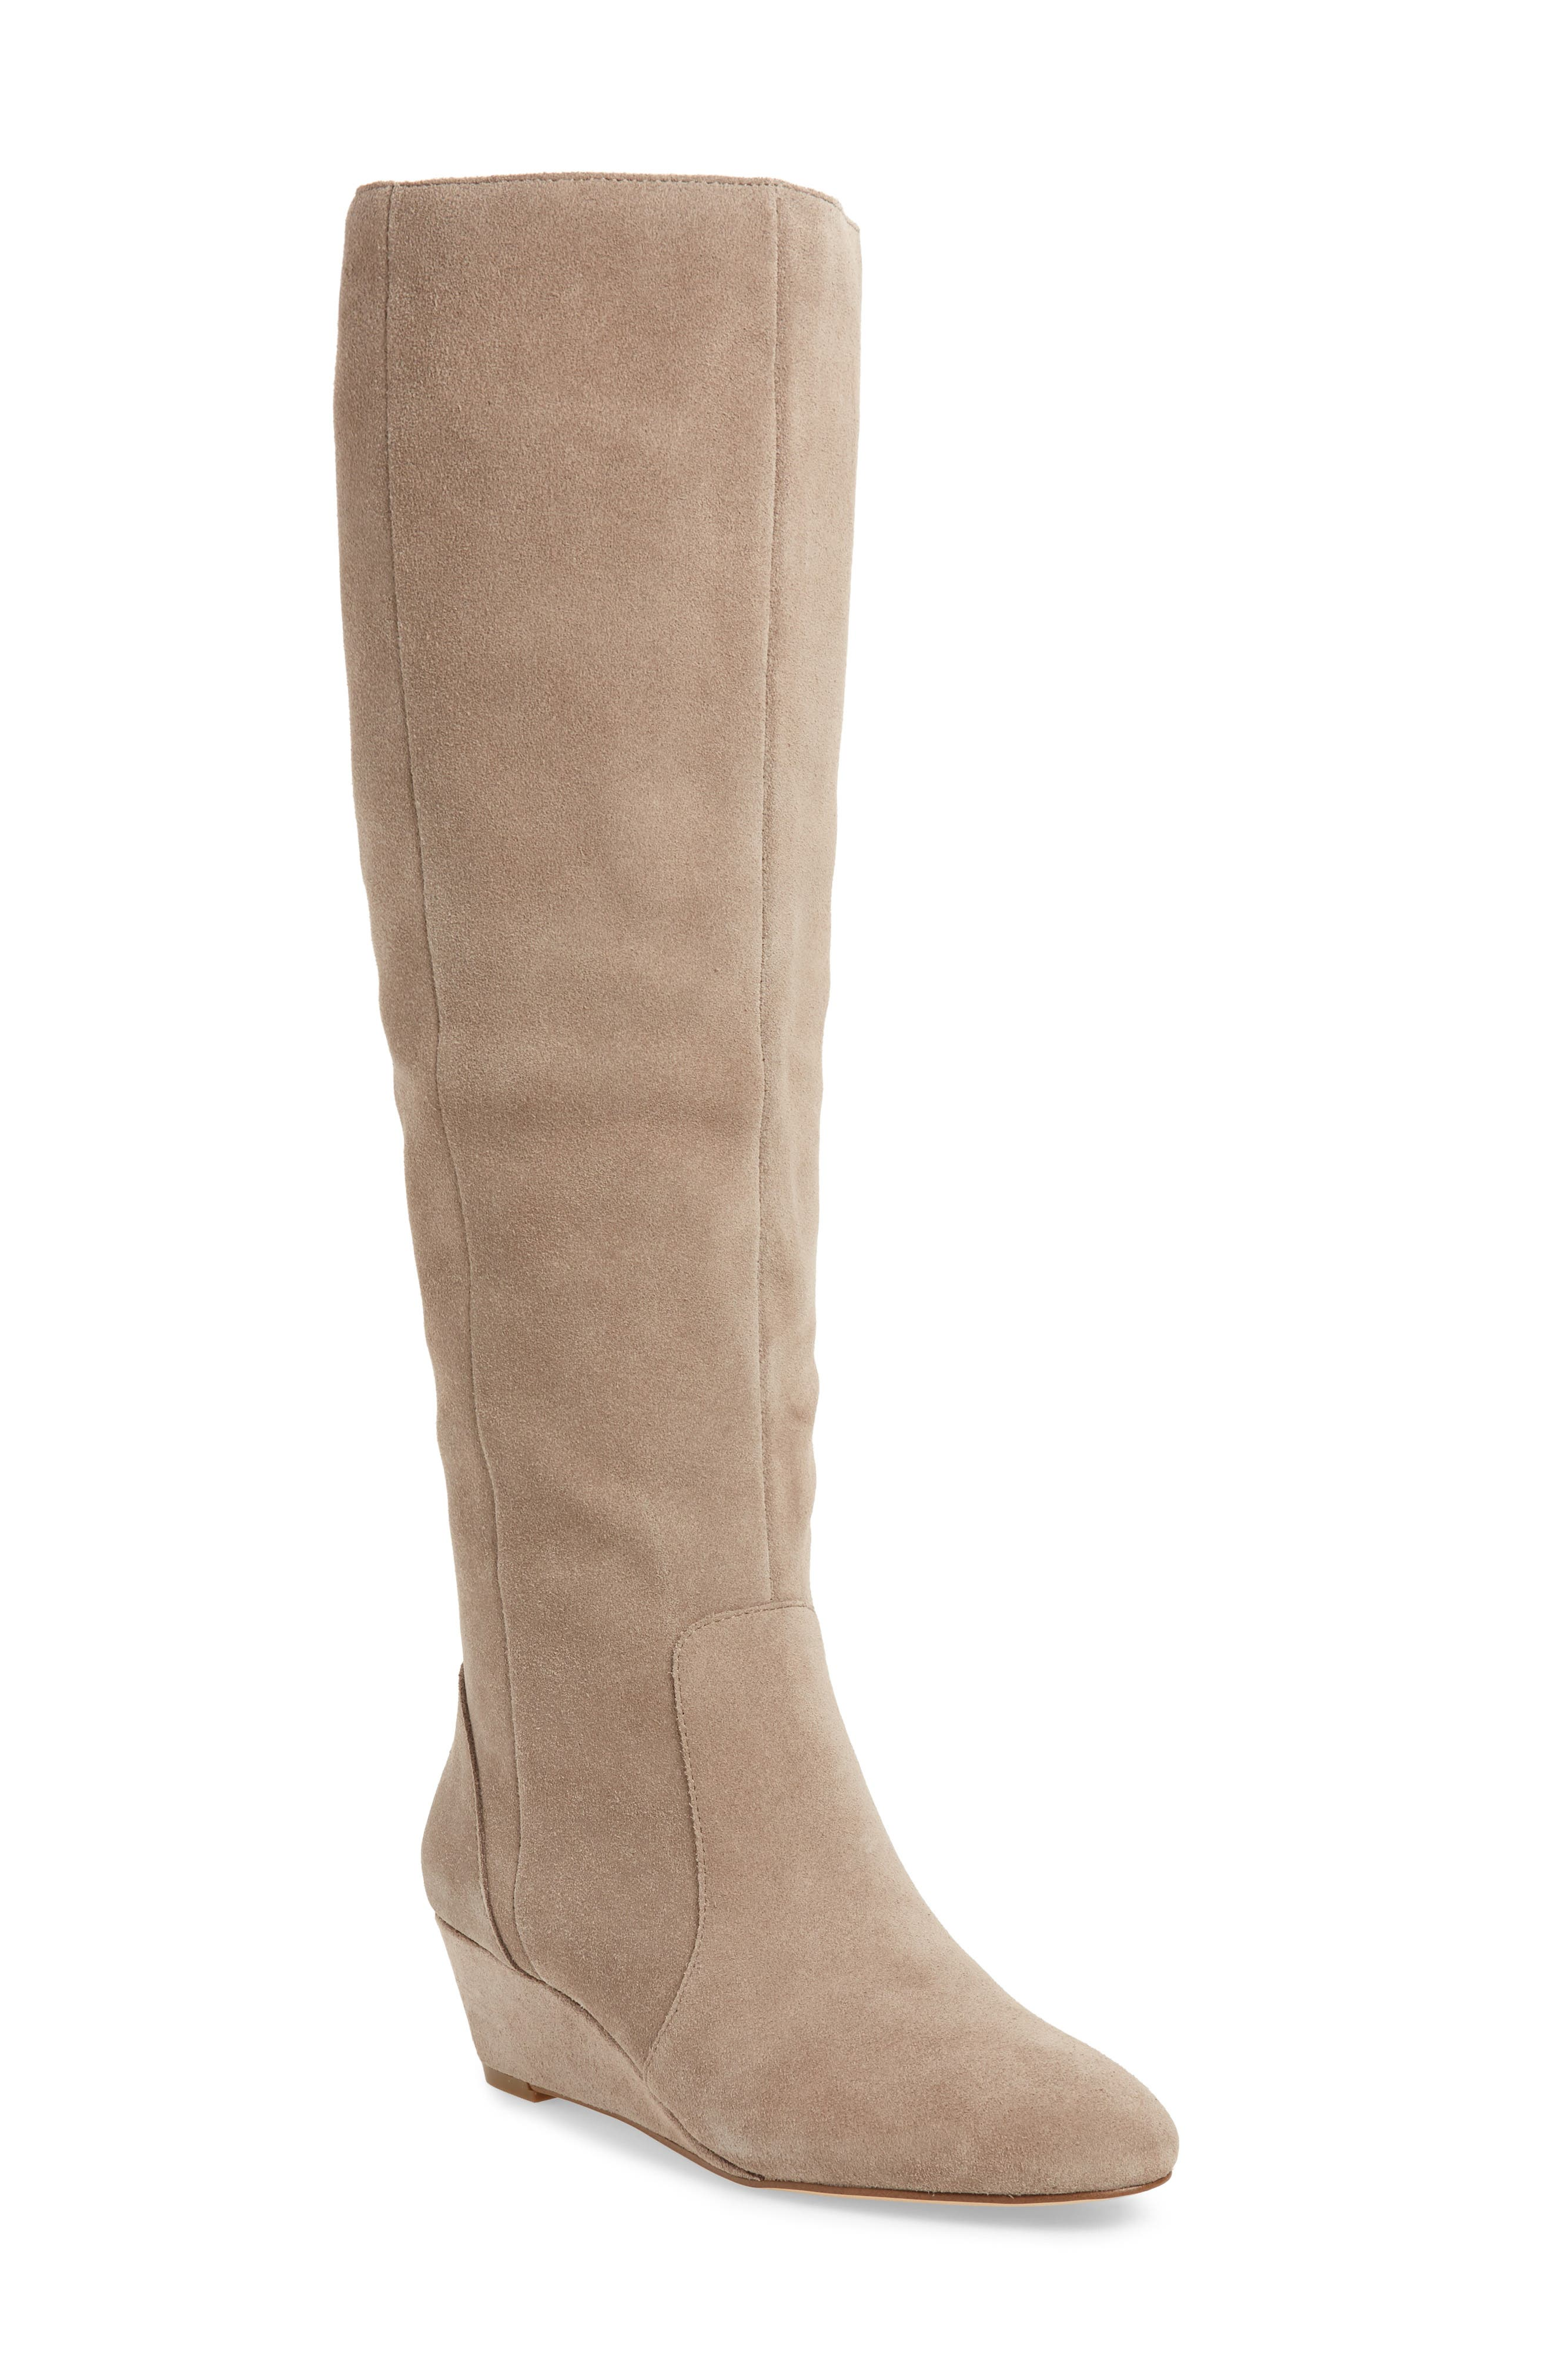 Aileena Over the Knee Boot,                             Main thumbnail 1, color,                             263